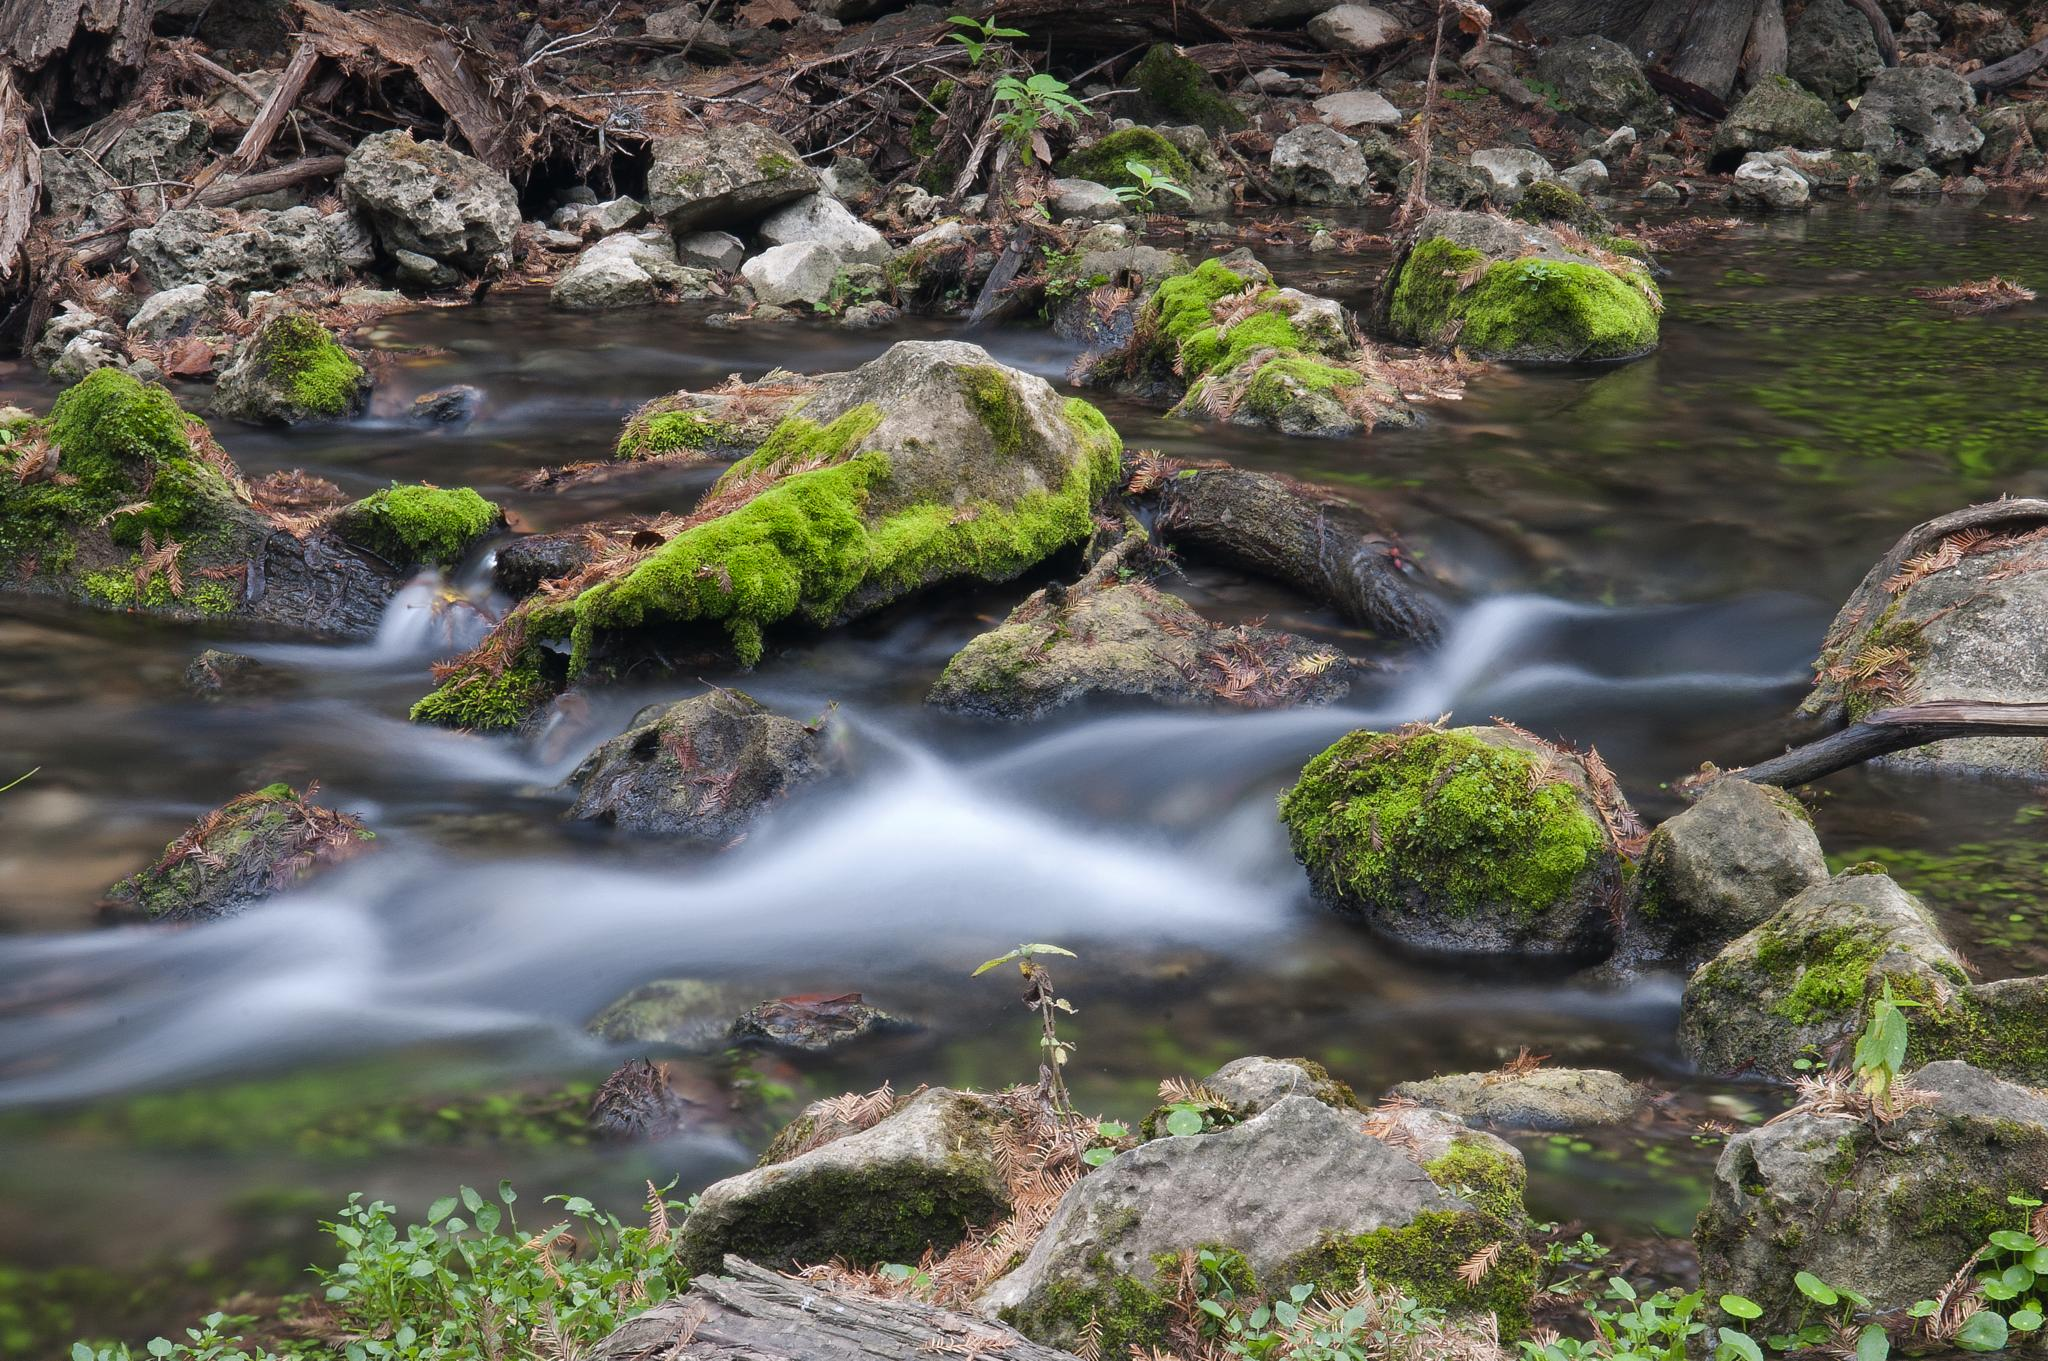 Ebb and Flow by ImagesbyChase